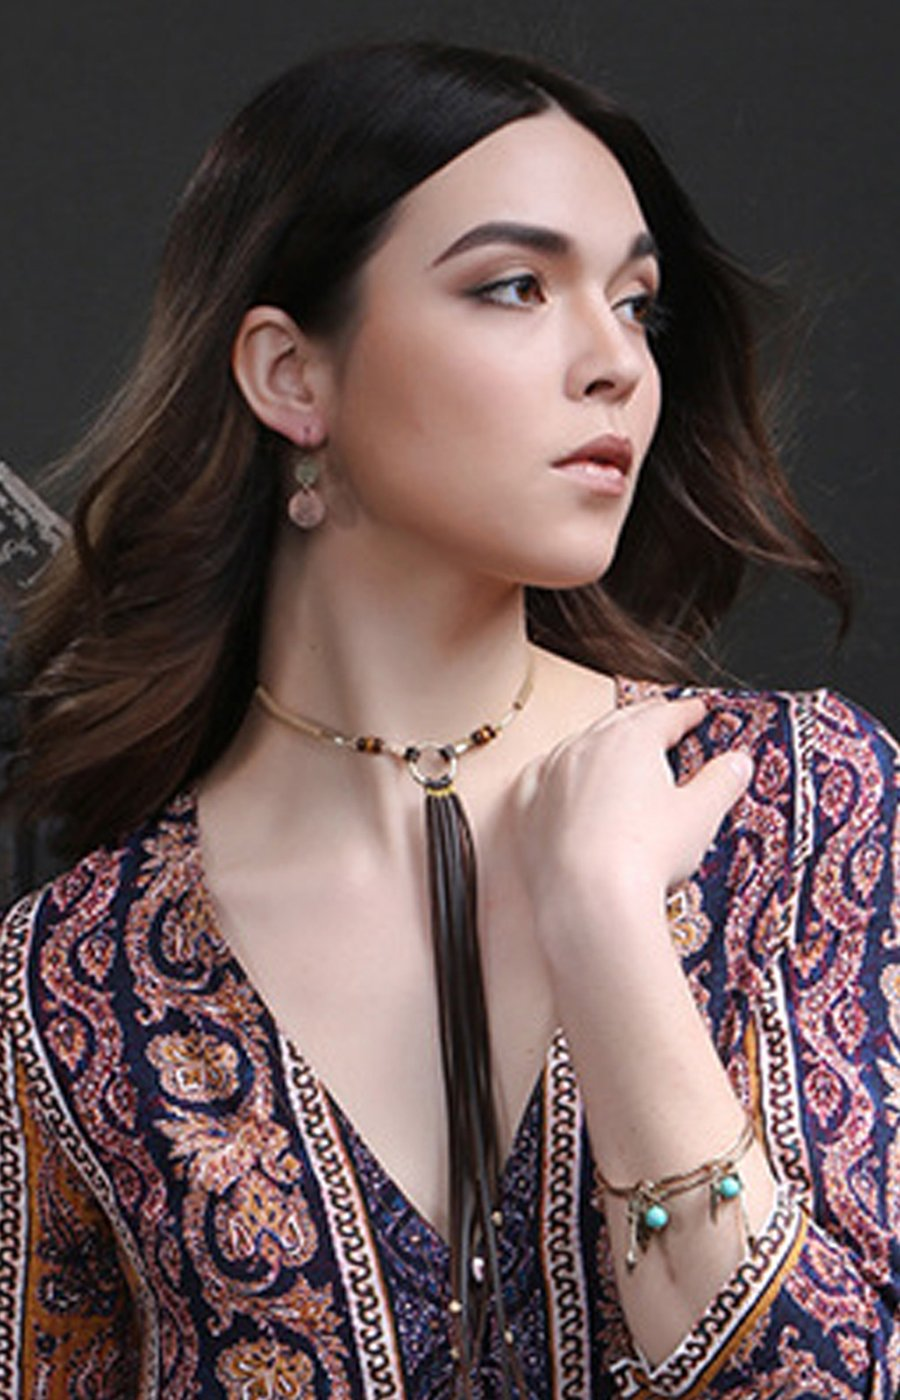 Kercisbeauty Summer Beach Boho Halo Silver Choker with Beads Brown Cloth Long Chain Rope Tassels Necklace for Women and Girls,Body Jewelry,Gift for her,Birthday Anniversary Gift,Party,teen girls